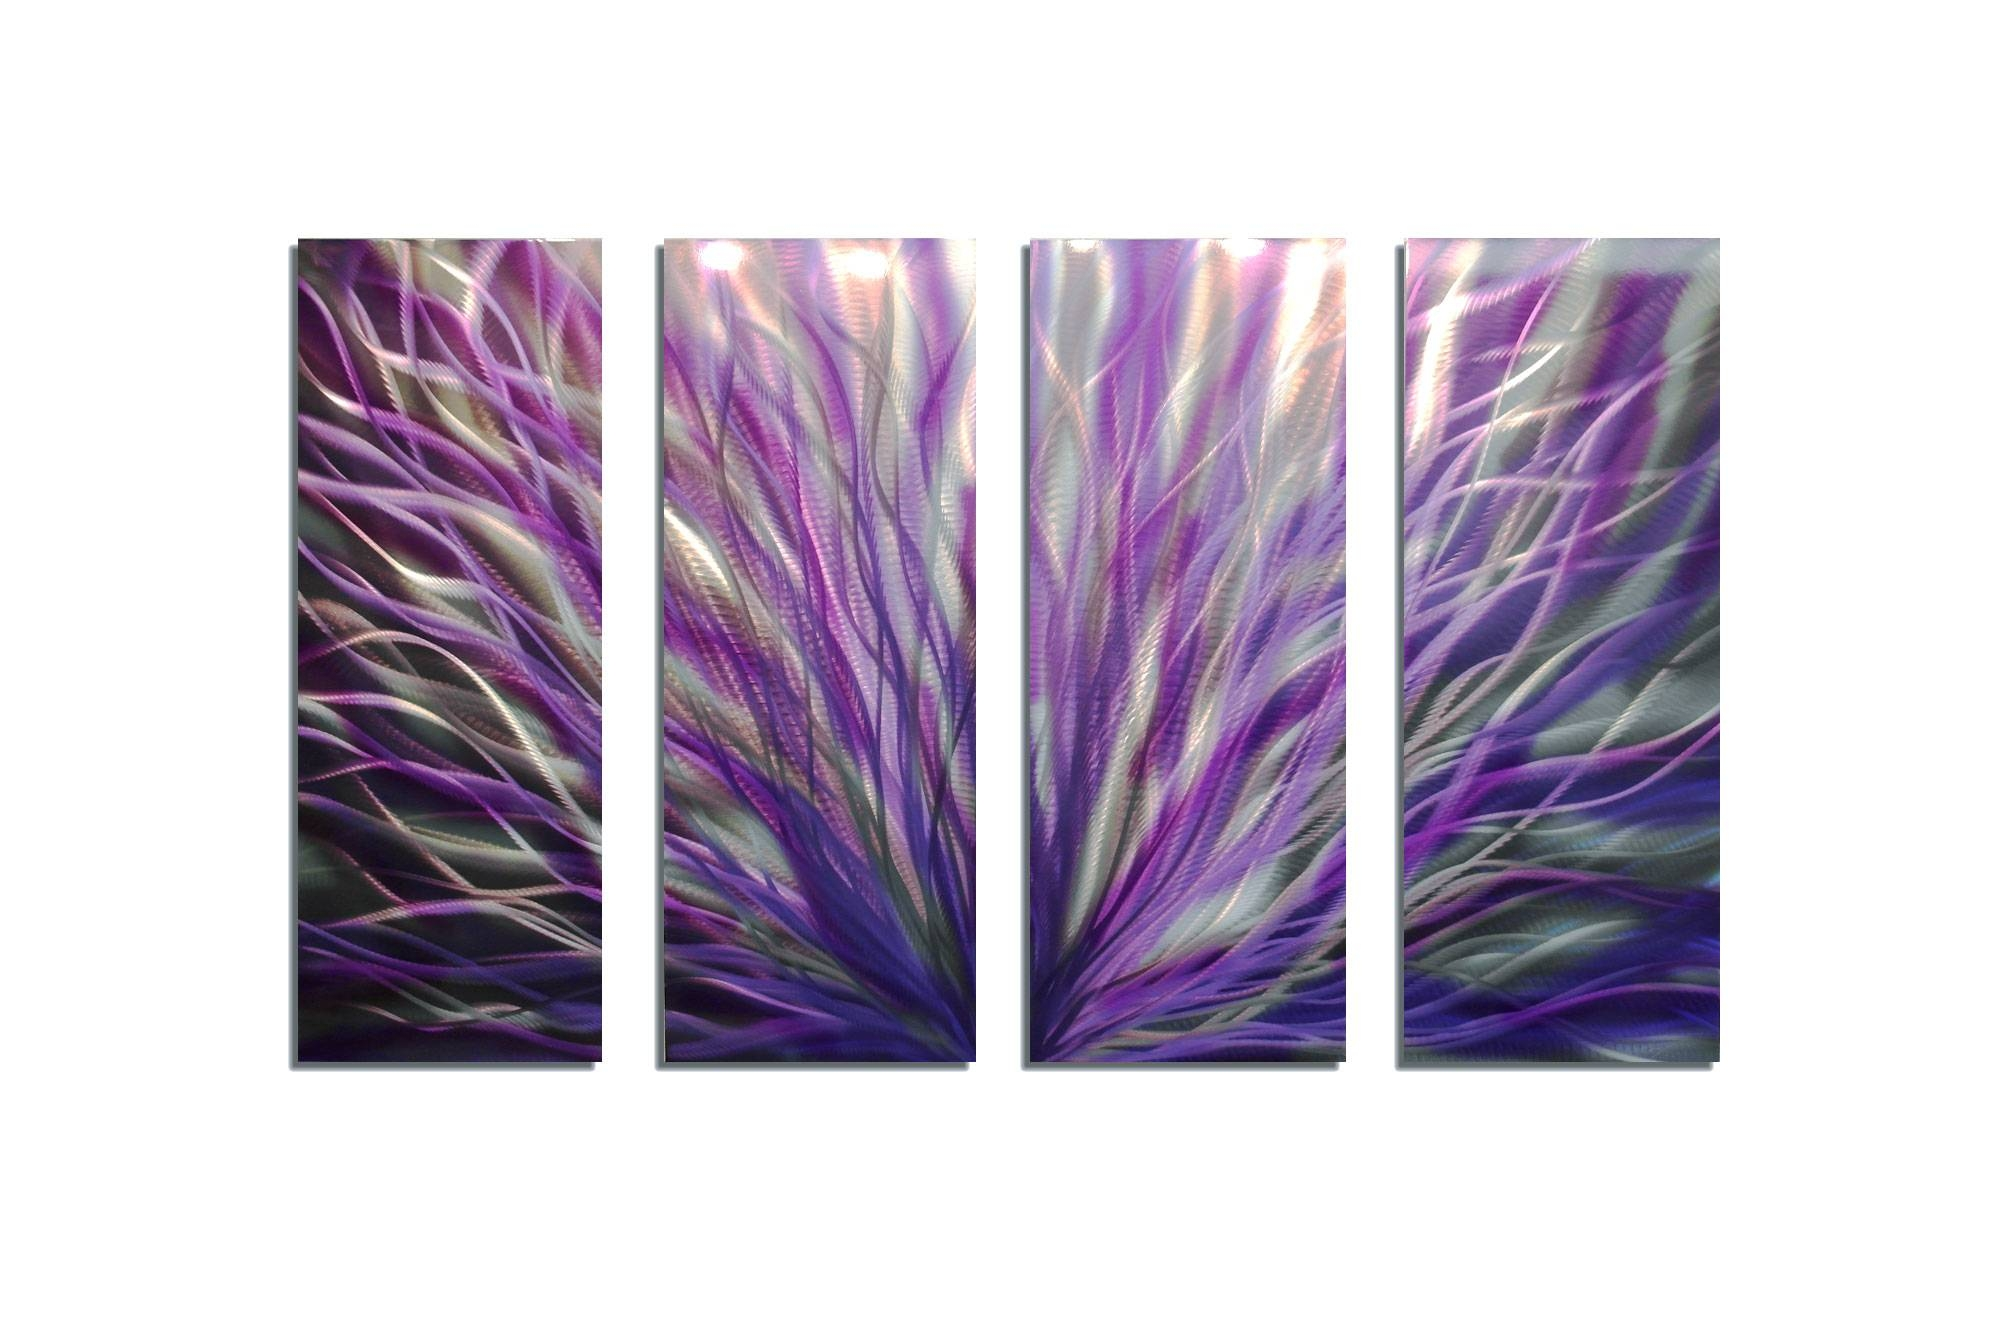 Radiance Purple 36X63 – Abstract Metal Wall Art Contemporary For 2018 Purple Metal Wall Art (Gallery 2 of 20)